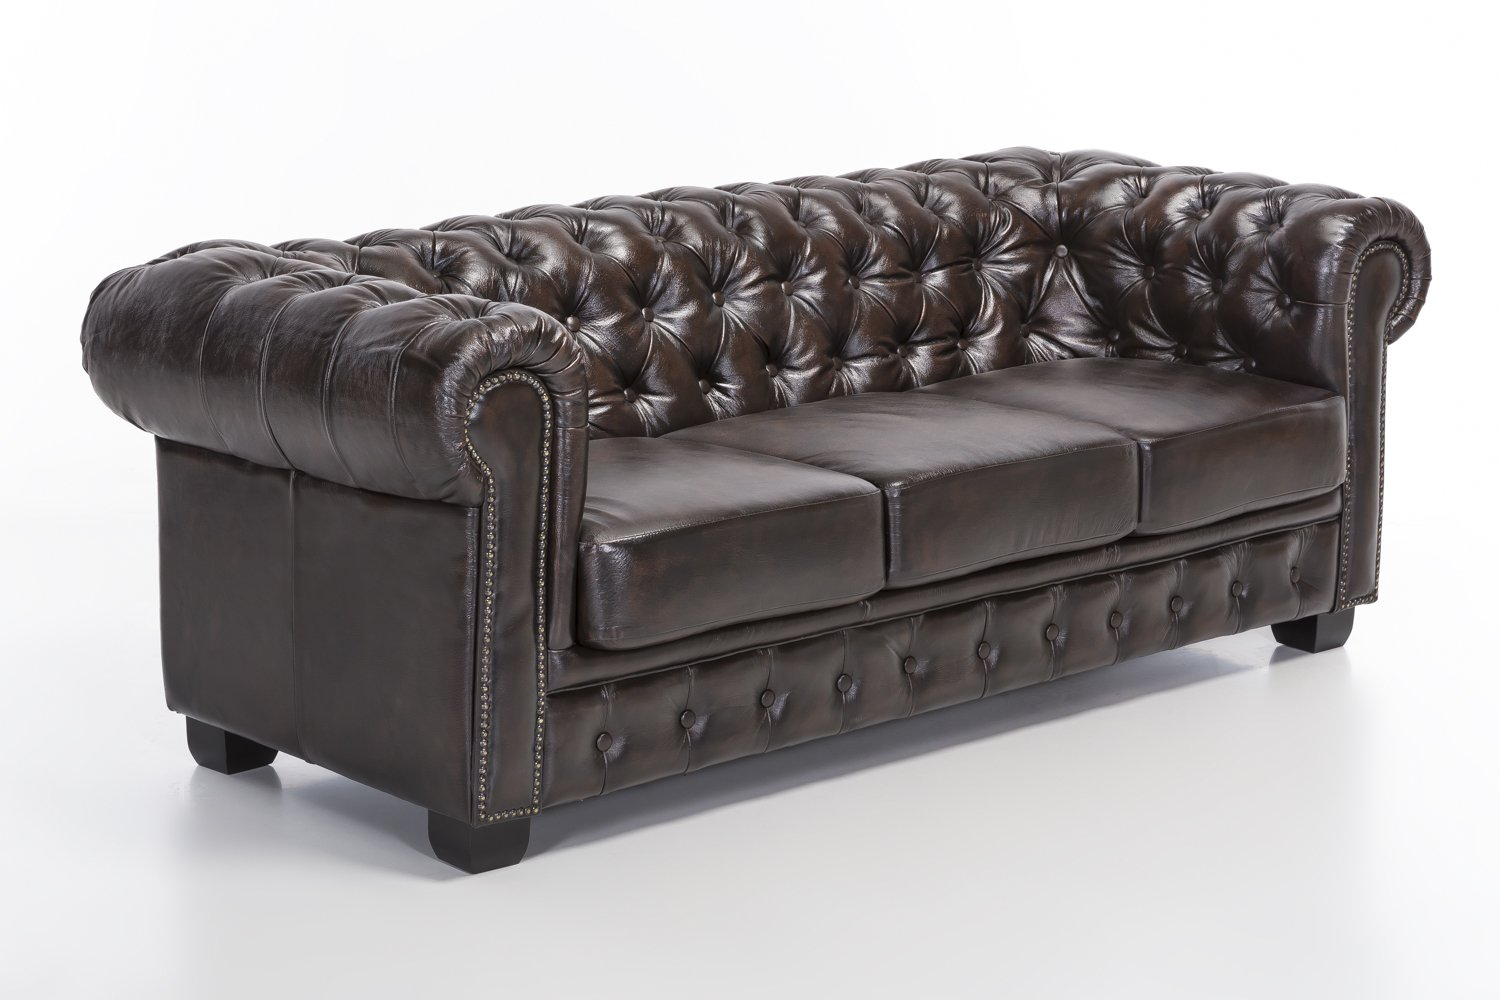 woodkings chesterfield sofa 3er braun vintage echtleder couch b rosofa polsterm bel 3 sitzer. Black Bedroom Furniture Sets. Home Design Ideas